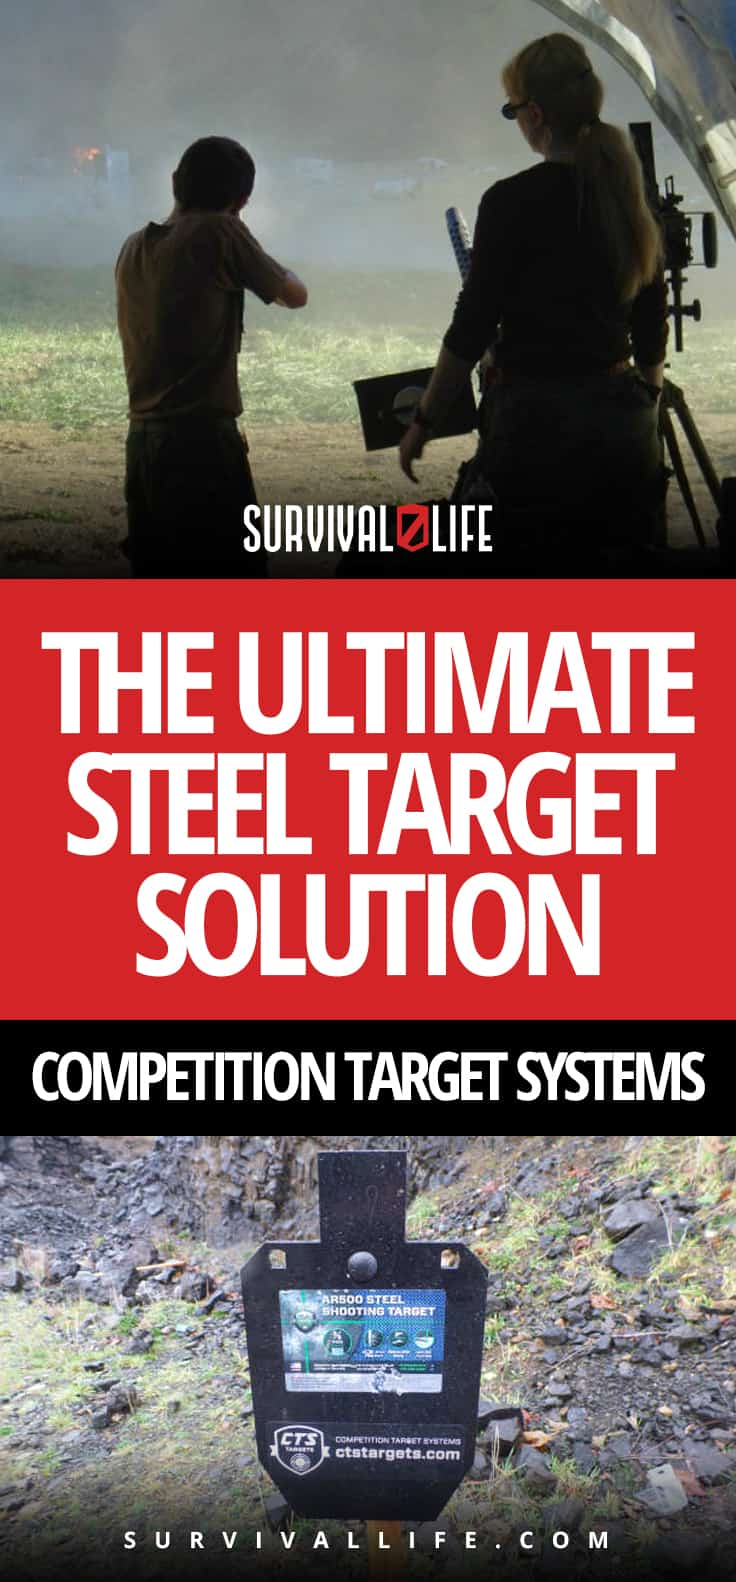 Bullseye! The Ultimate Steel Target Solution | Competition Target Systems